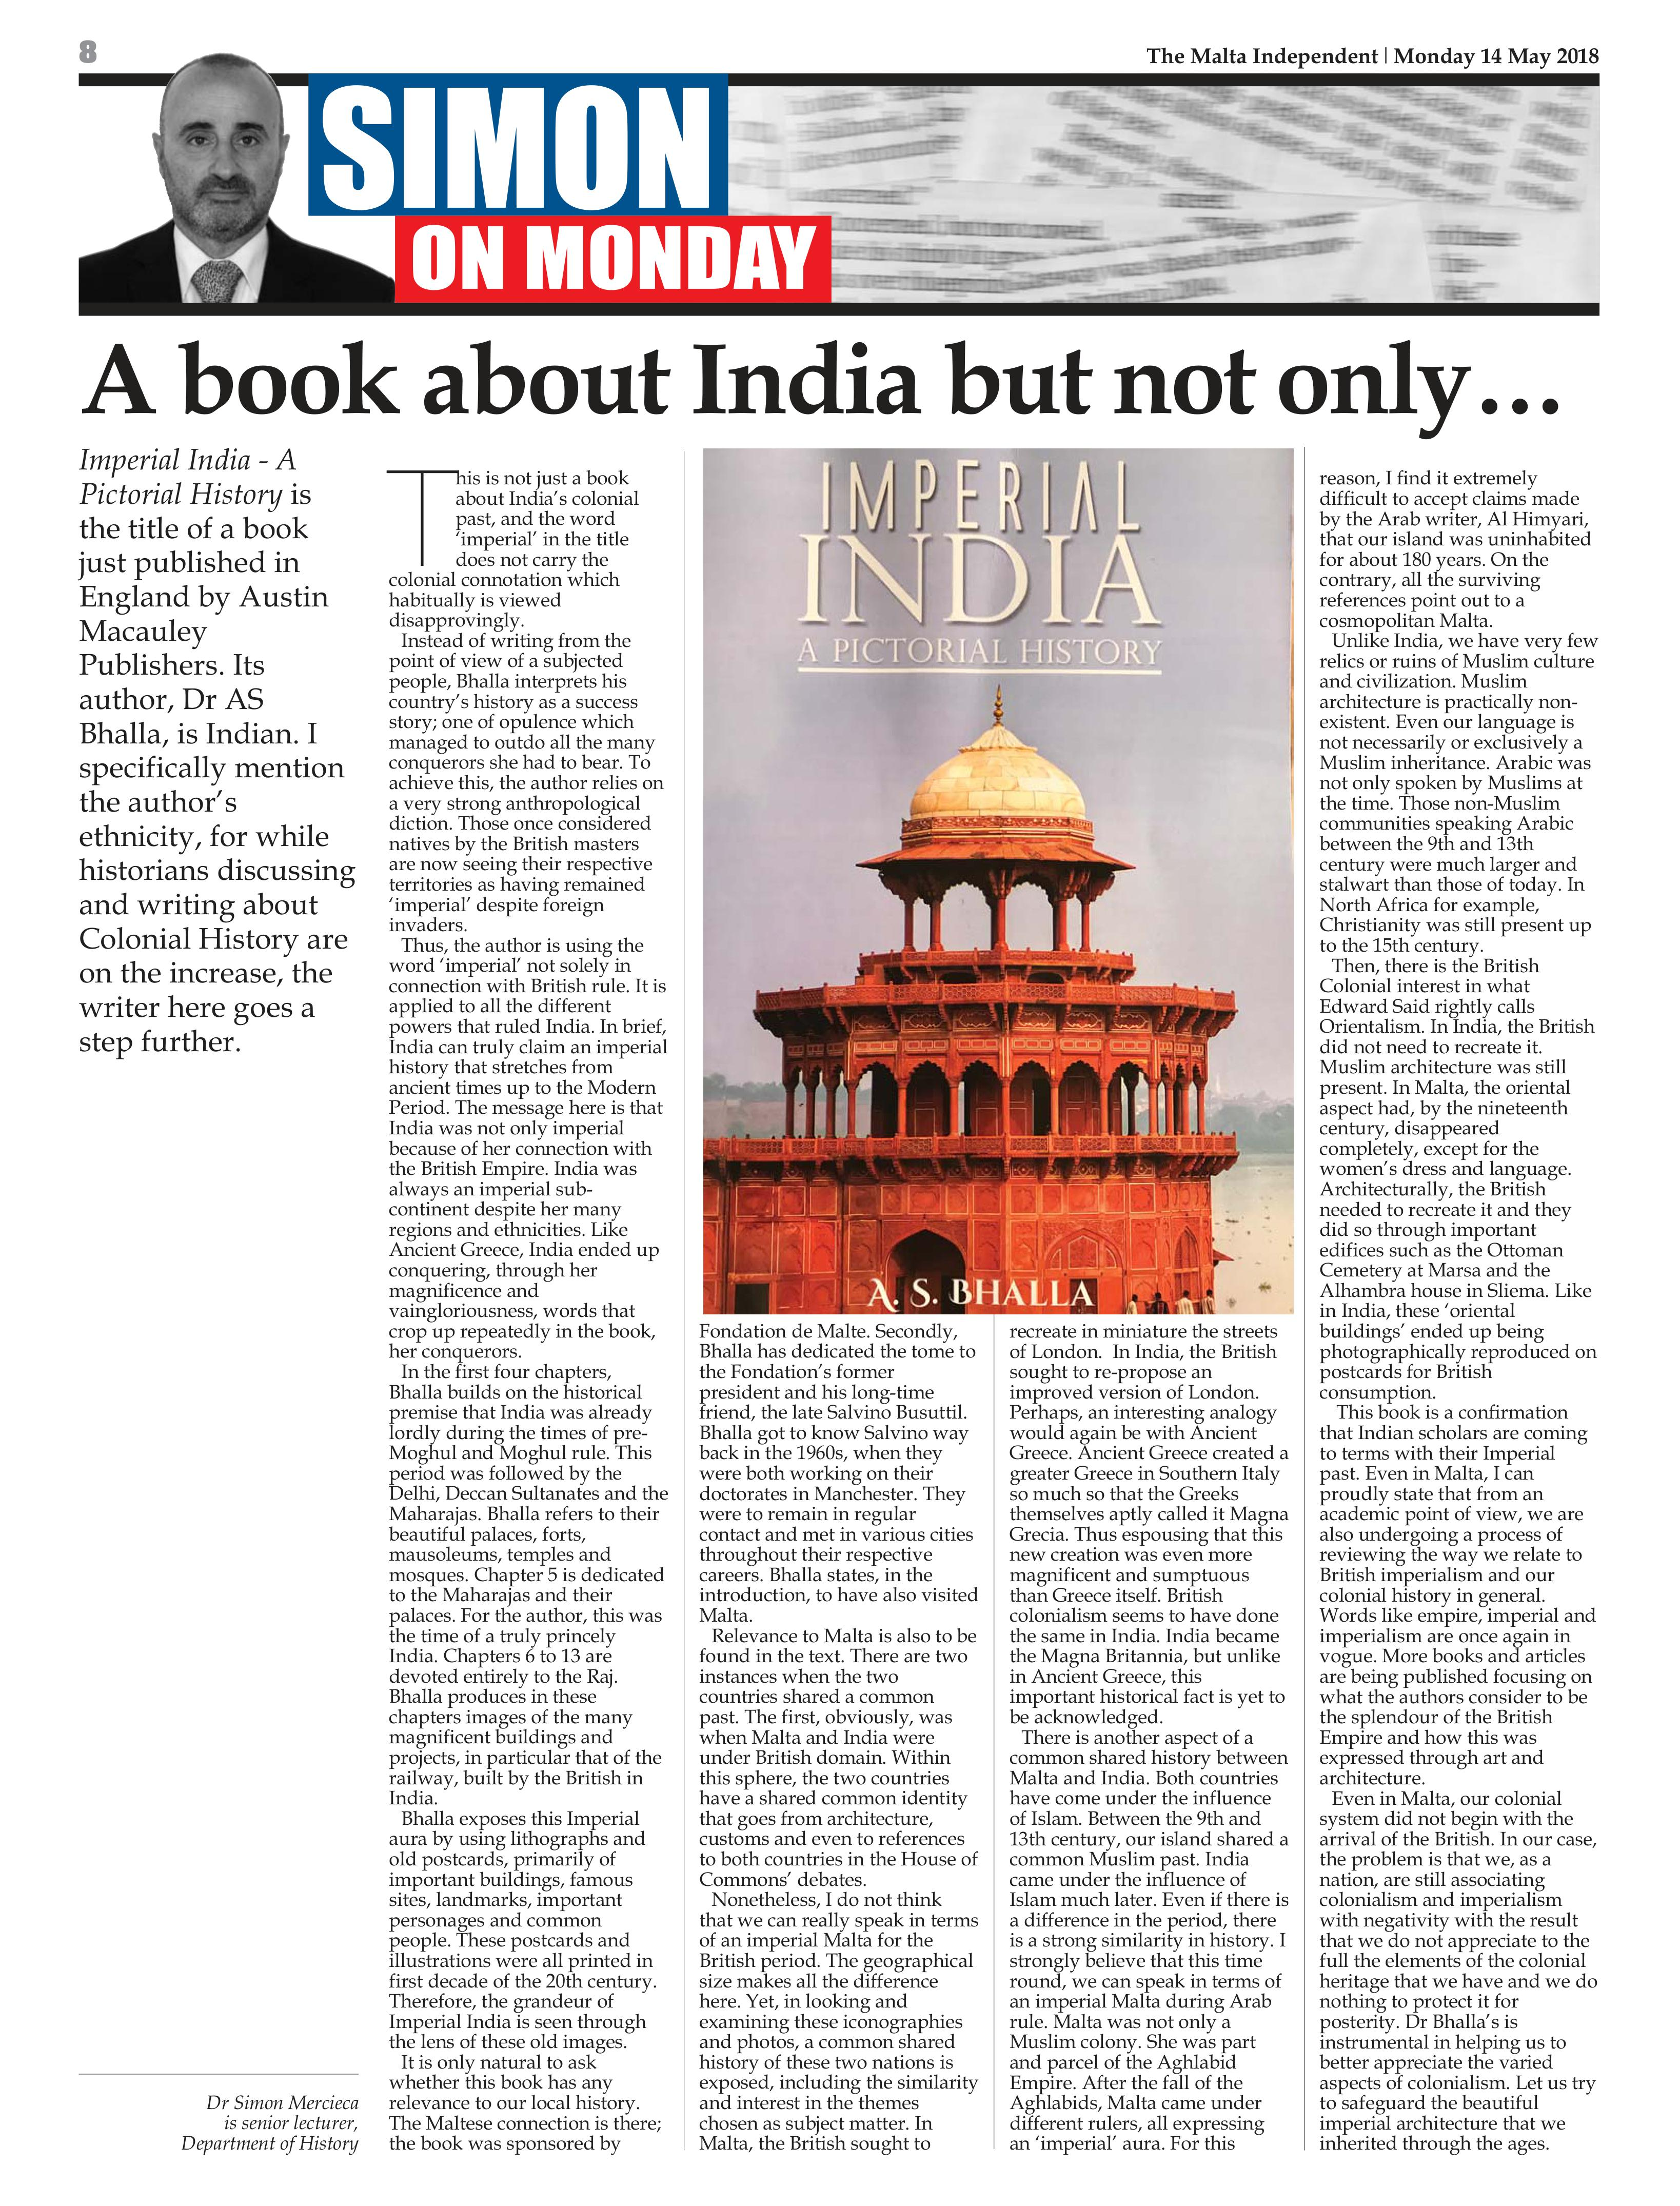 Imperial India: A Pictorial History' by A S  Bhalla received